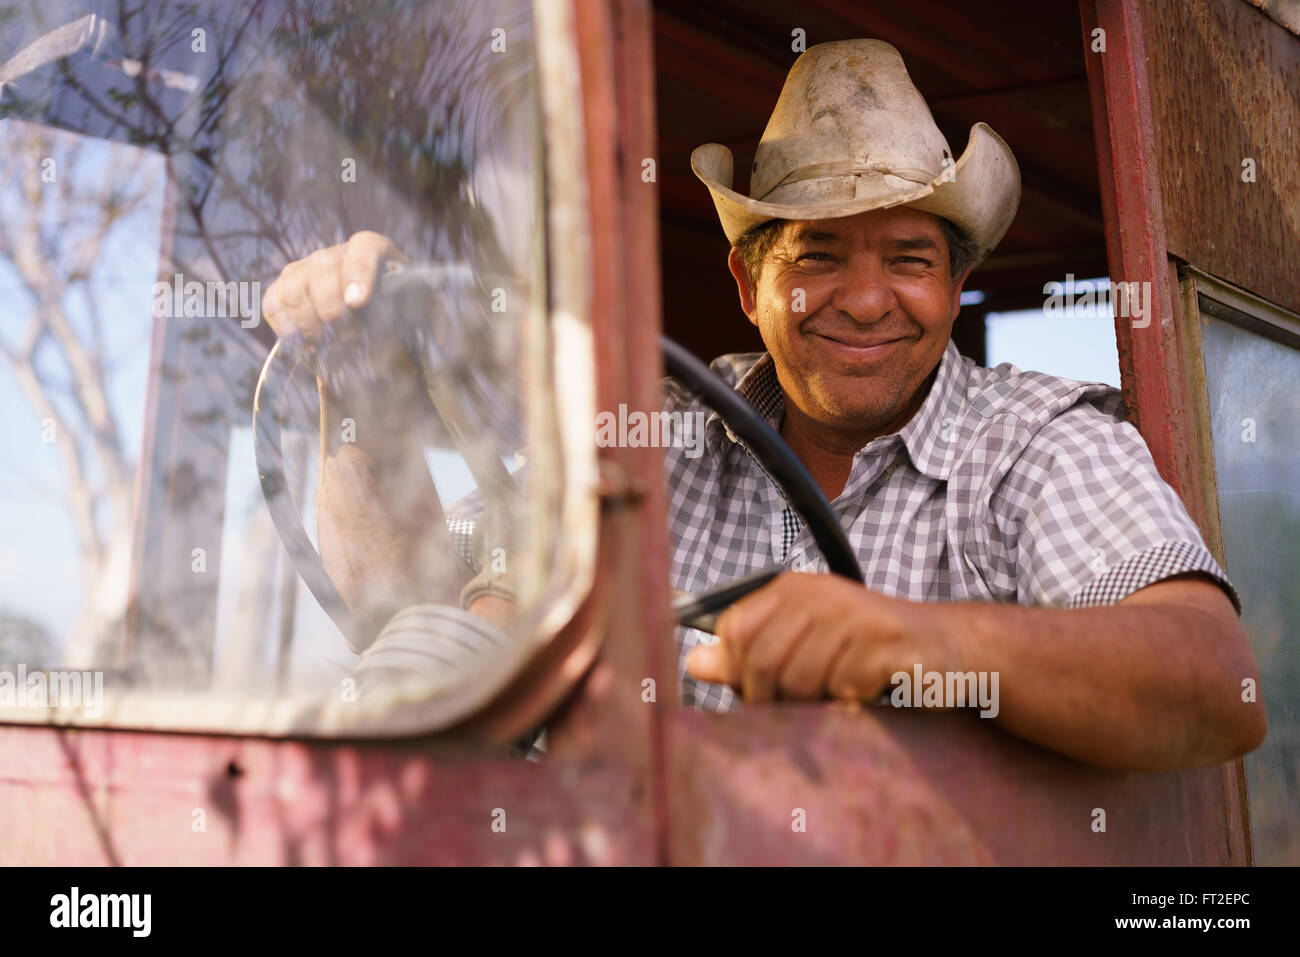 Farming and cultivations in Latin America. Portrait of middle aged hispanic farmer sitting proud in his tractor - Stock Image